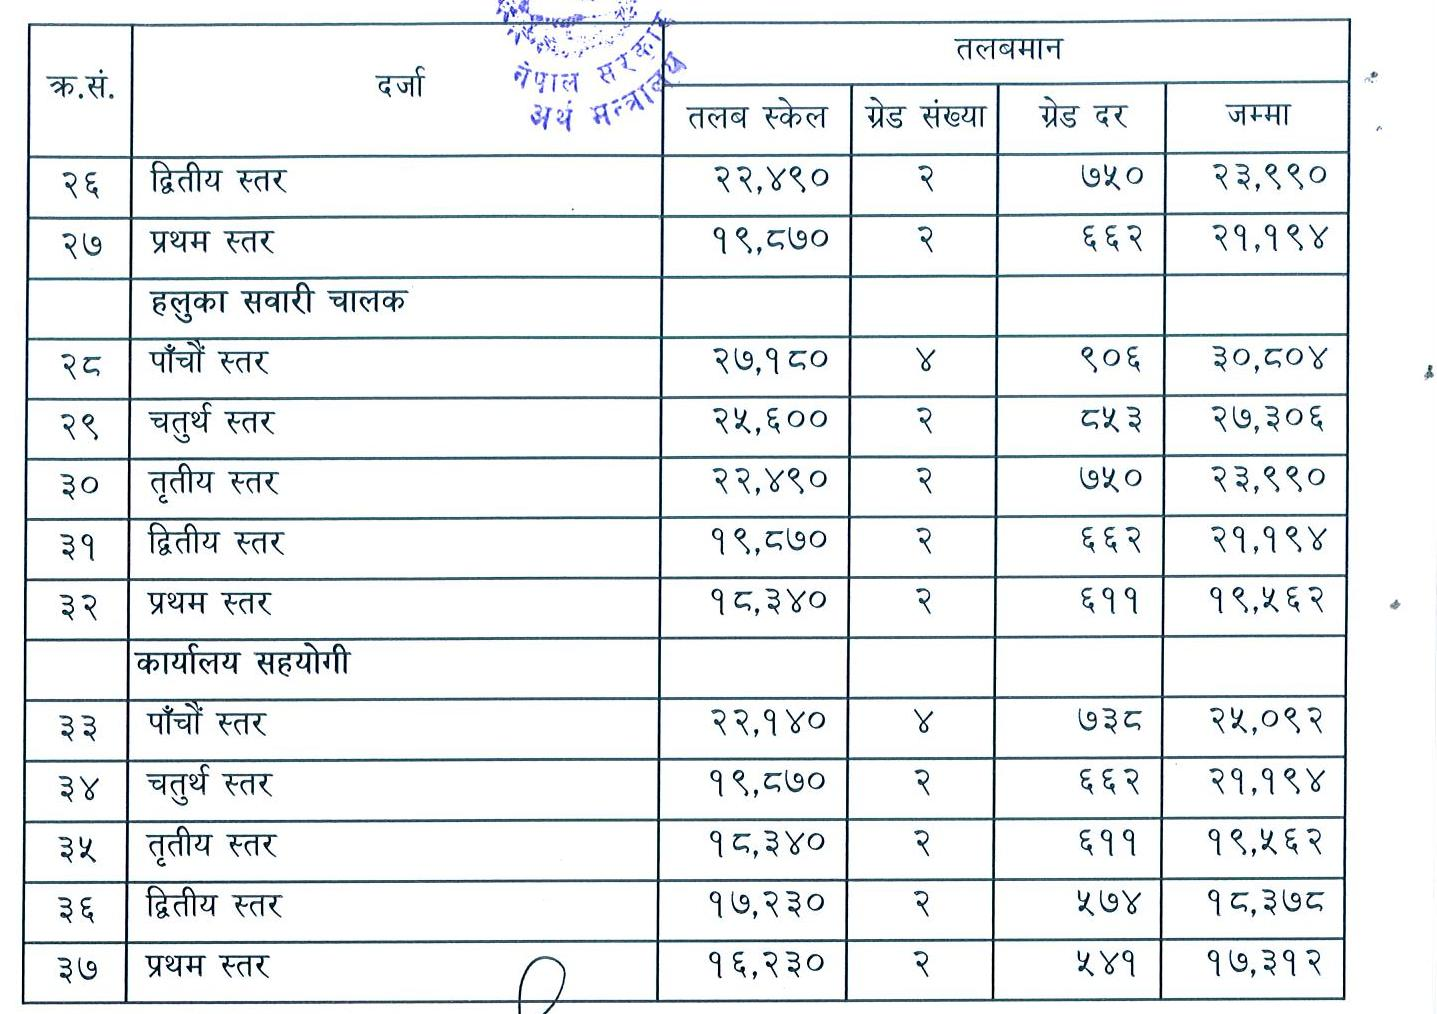 Salary of Government officials of Nepal